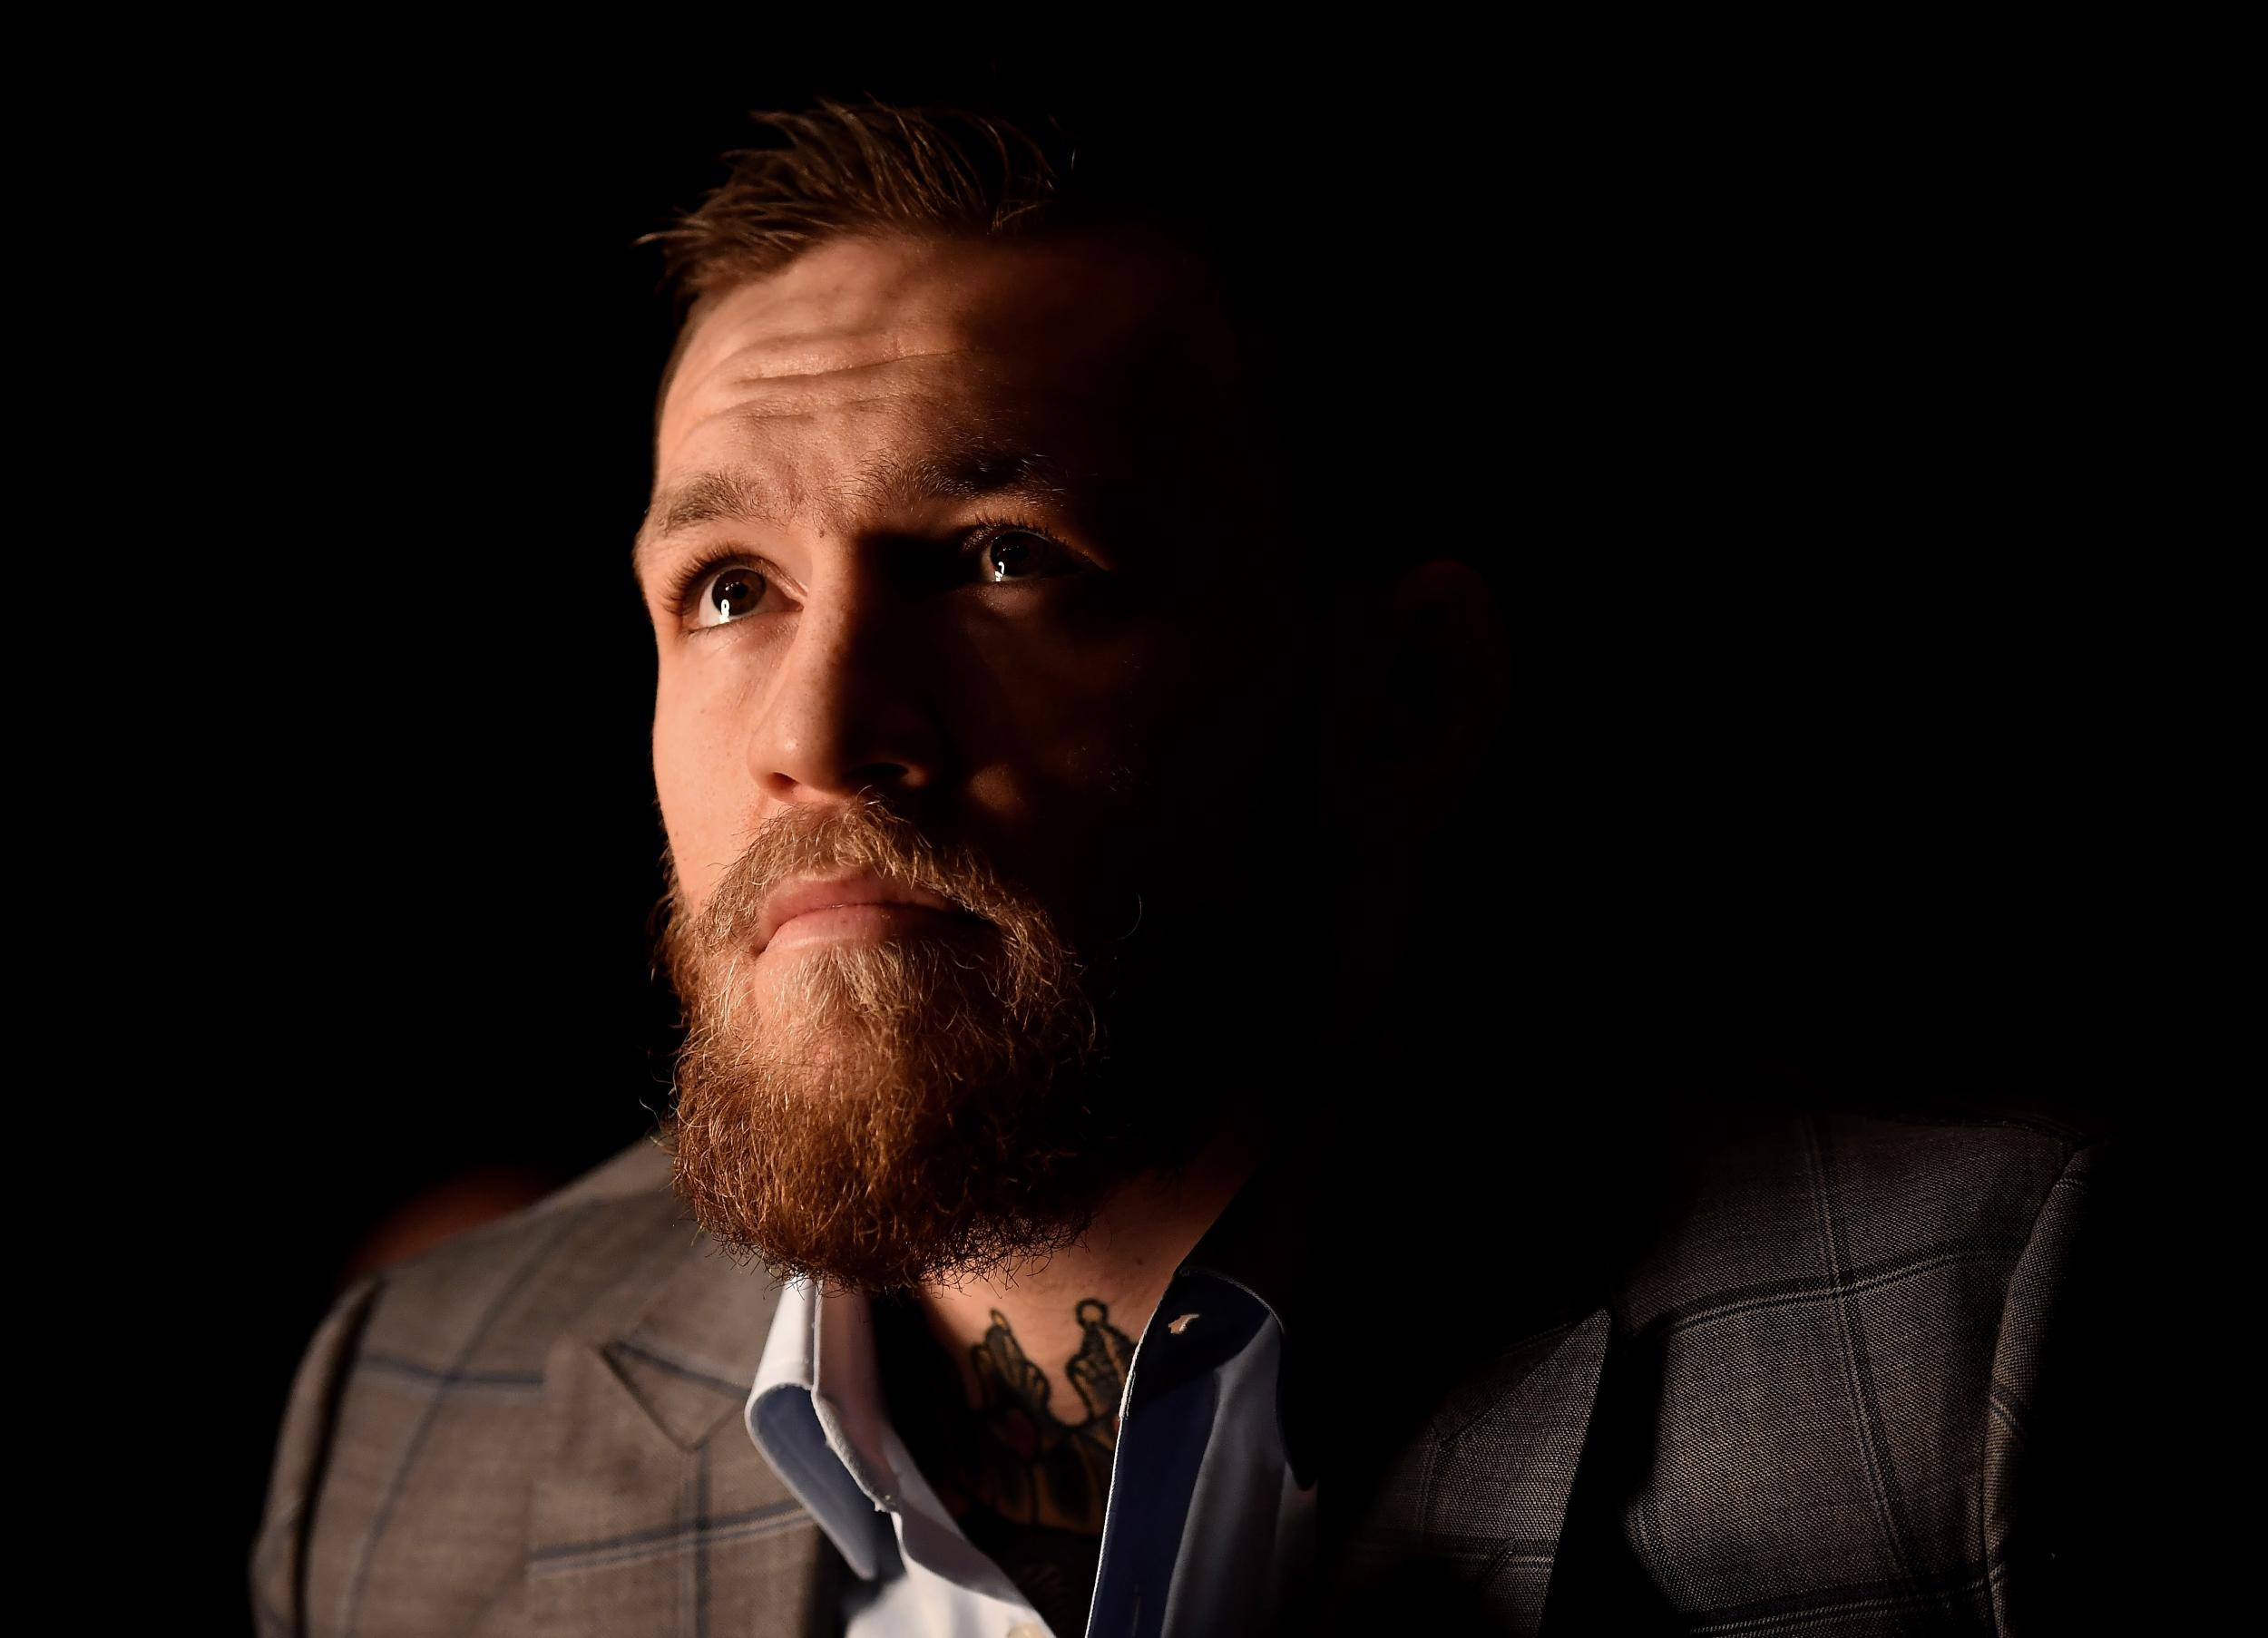 conor mcgregor - photo #46